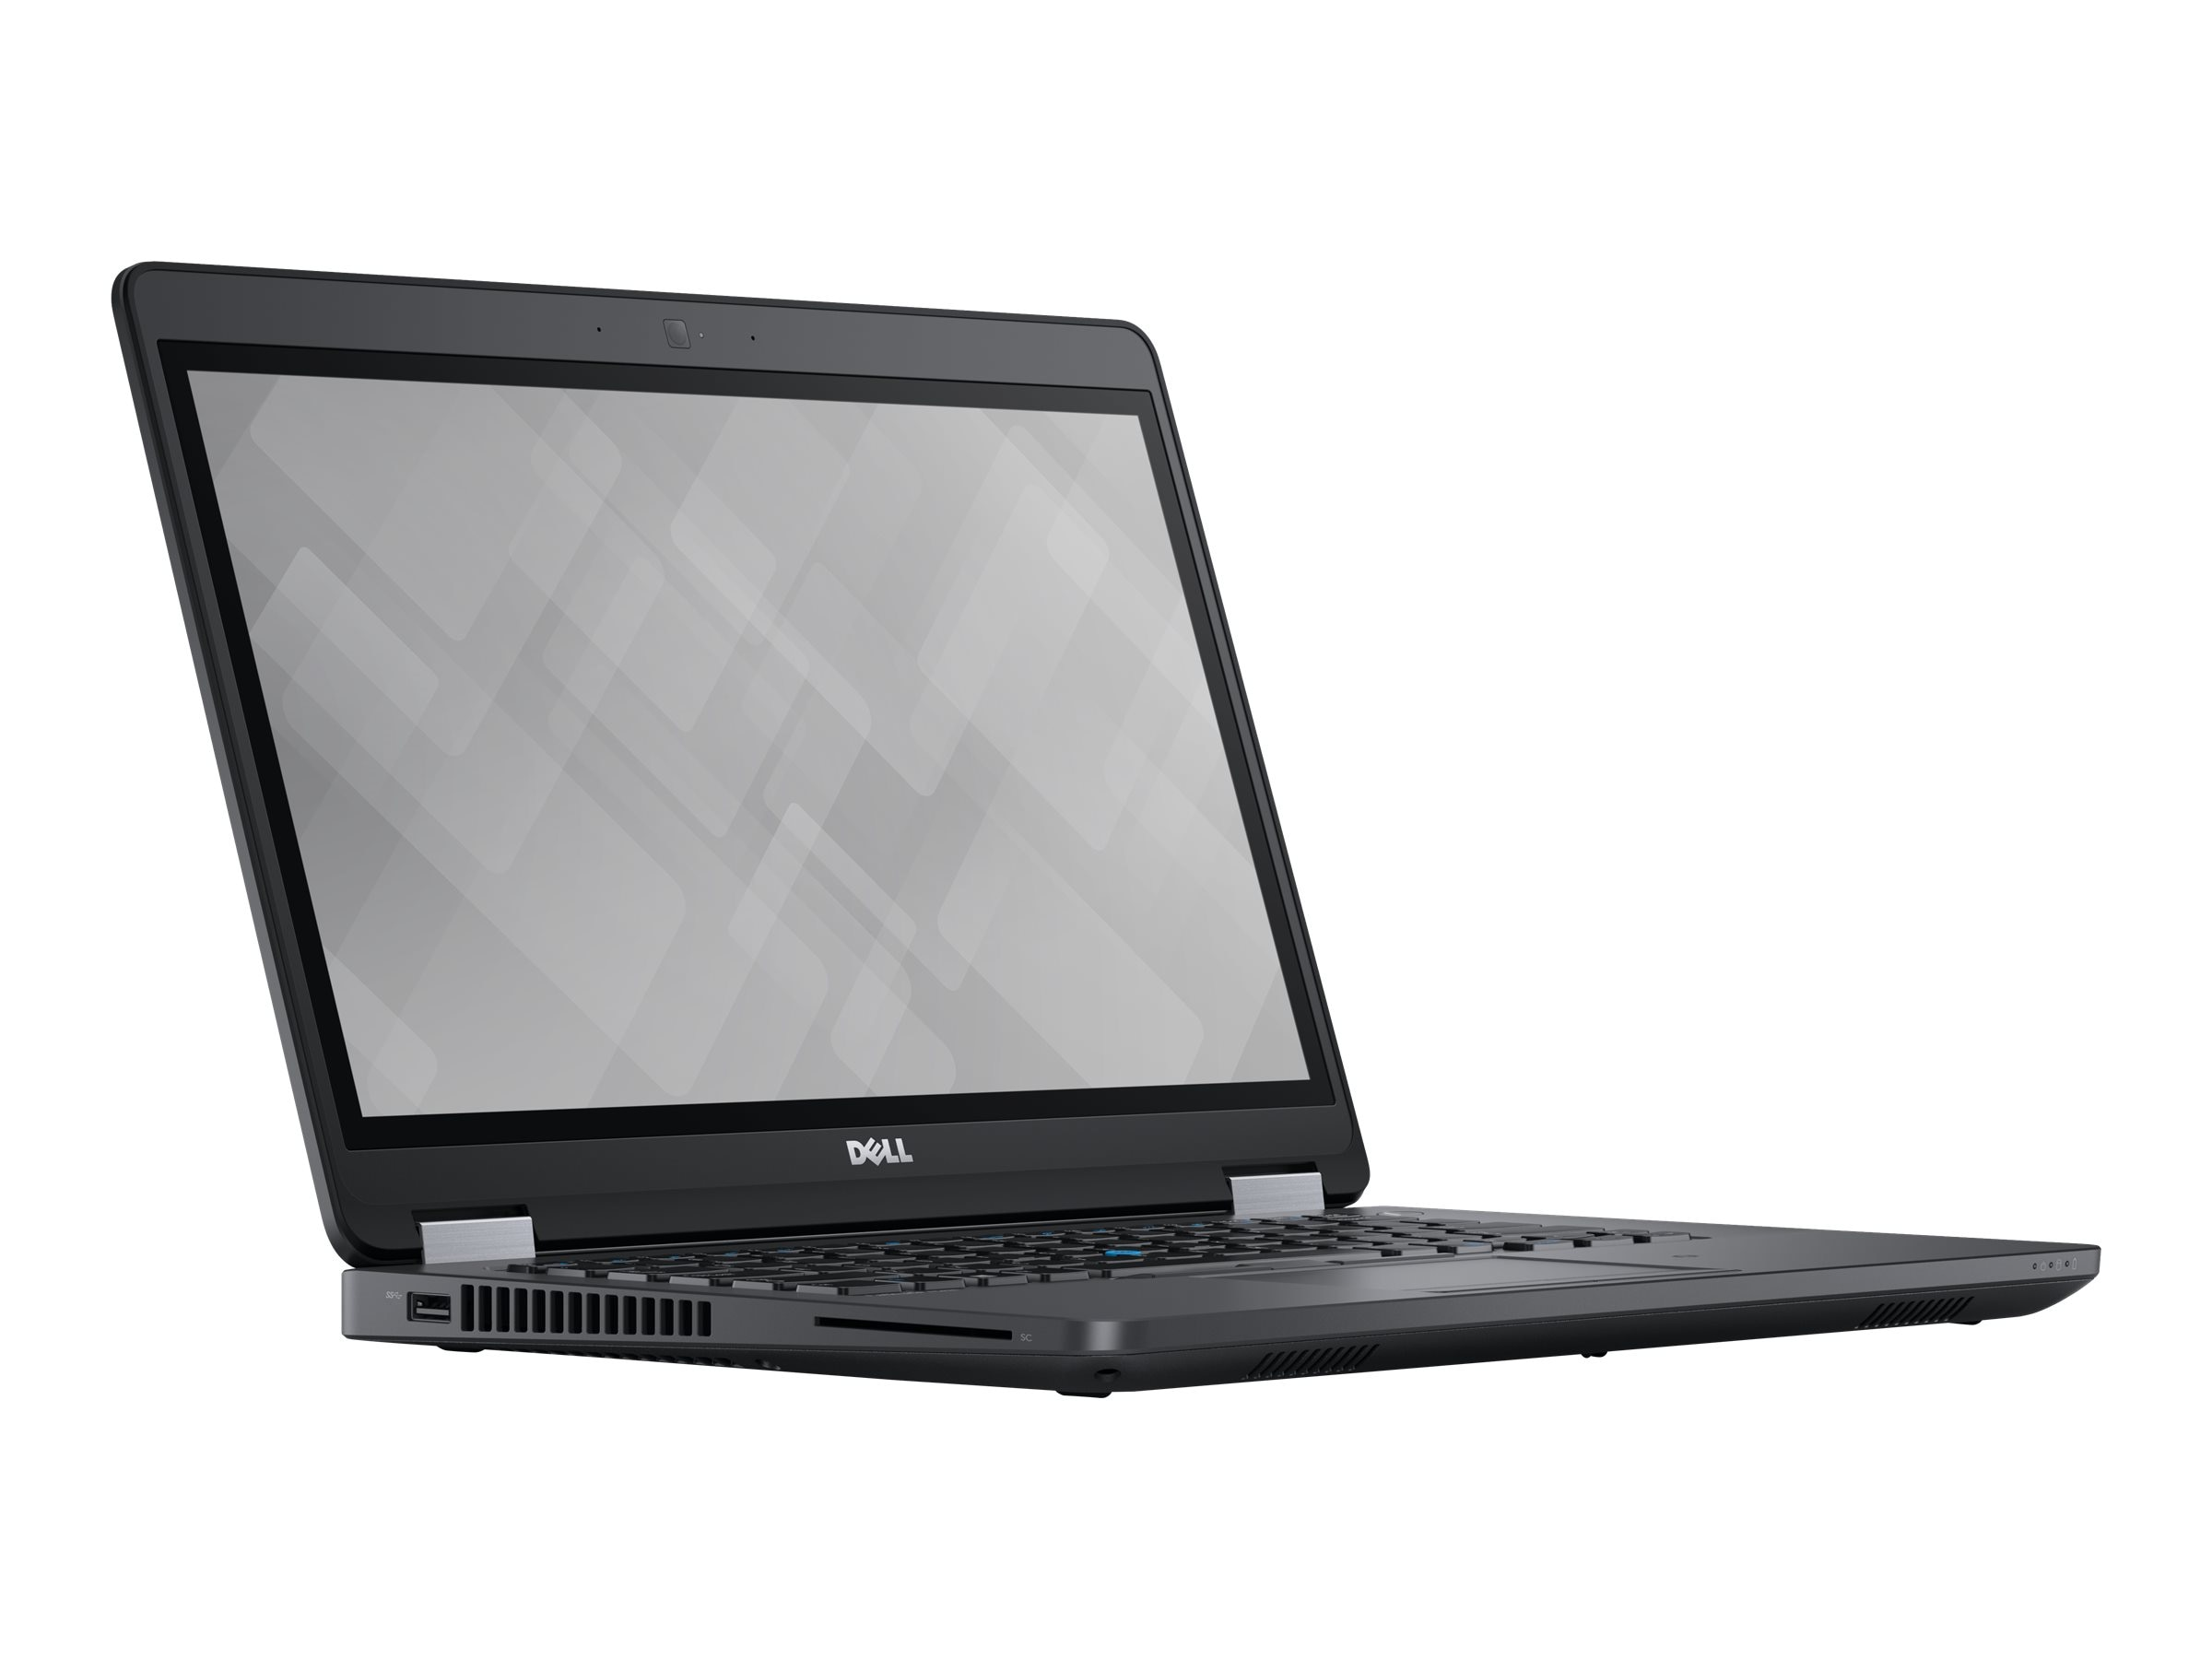 Dell Latitude E5470 Core i5-6300U 2.4GHz 8GB 180GB SSD ac BT WC 4C 14 HD W7P64-W10P, KMYW3